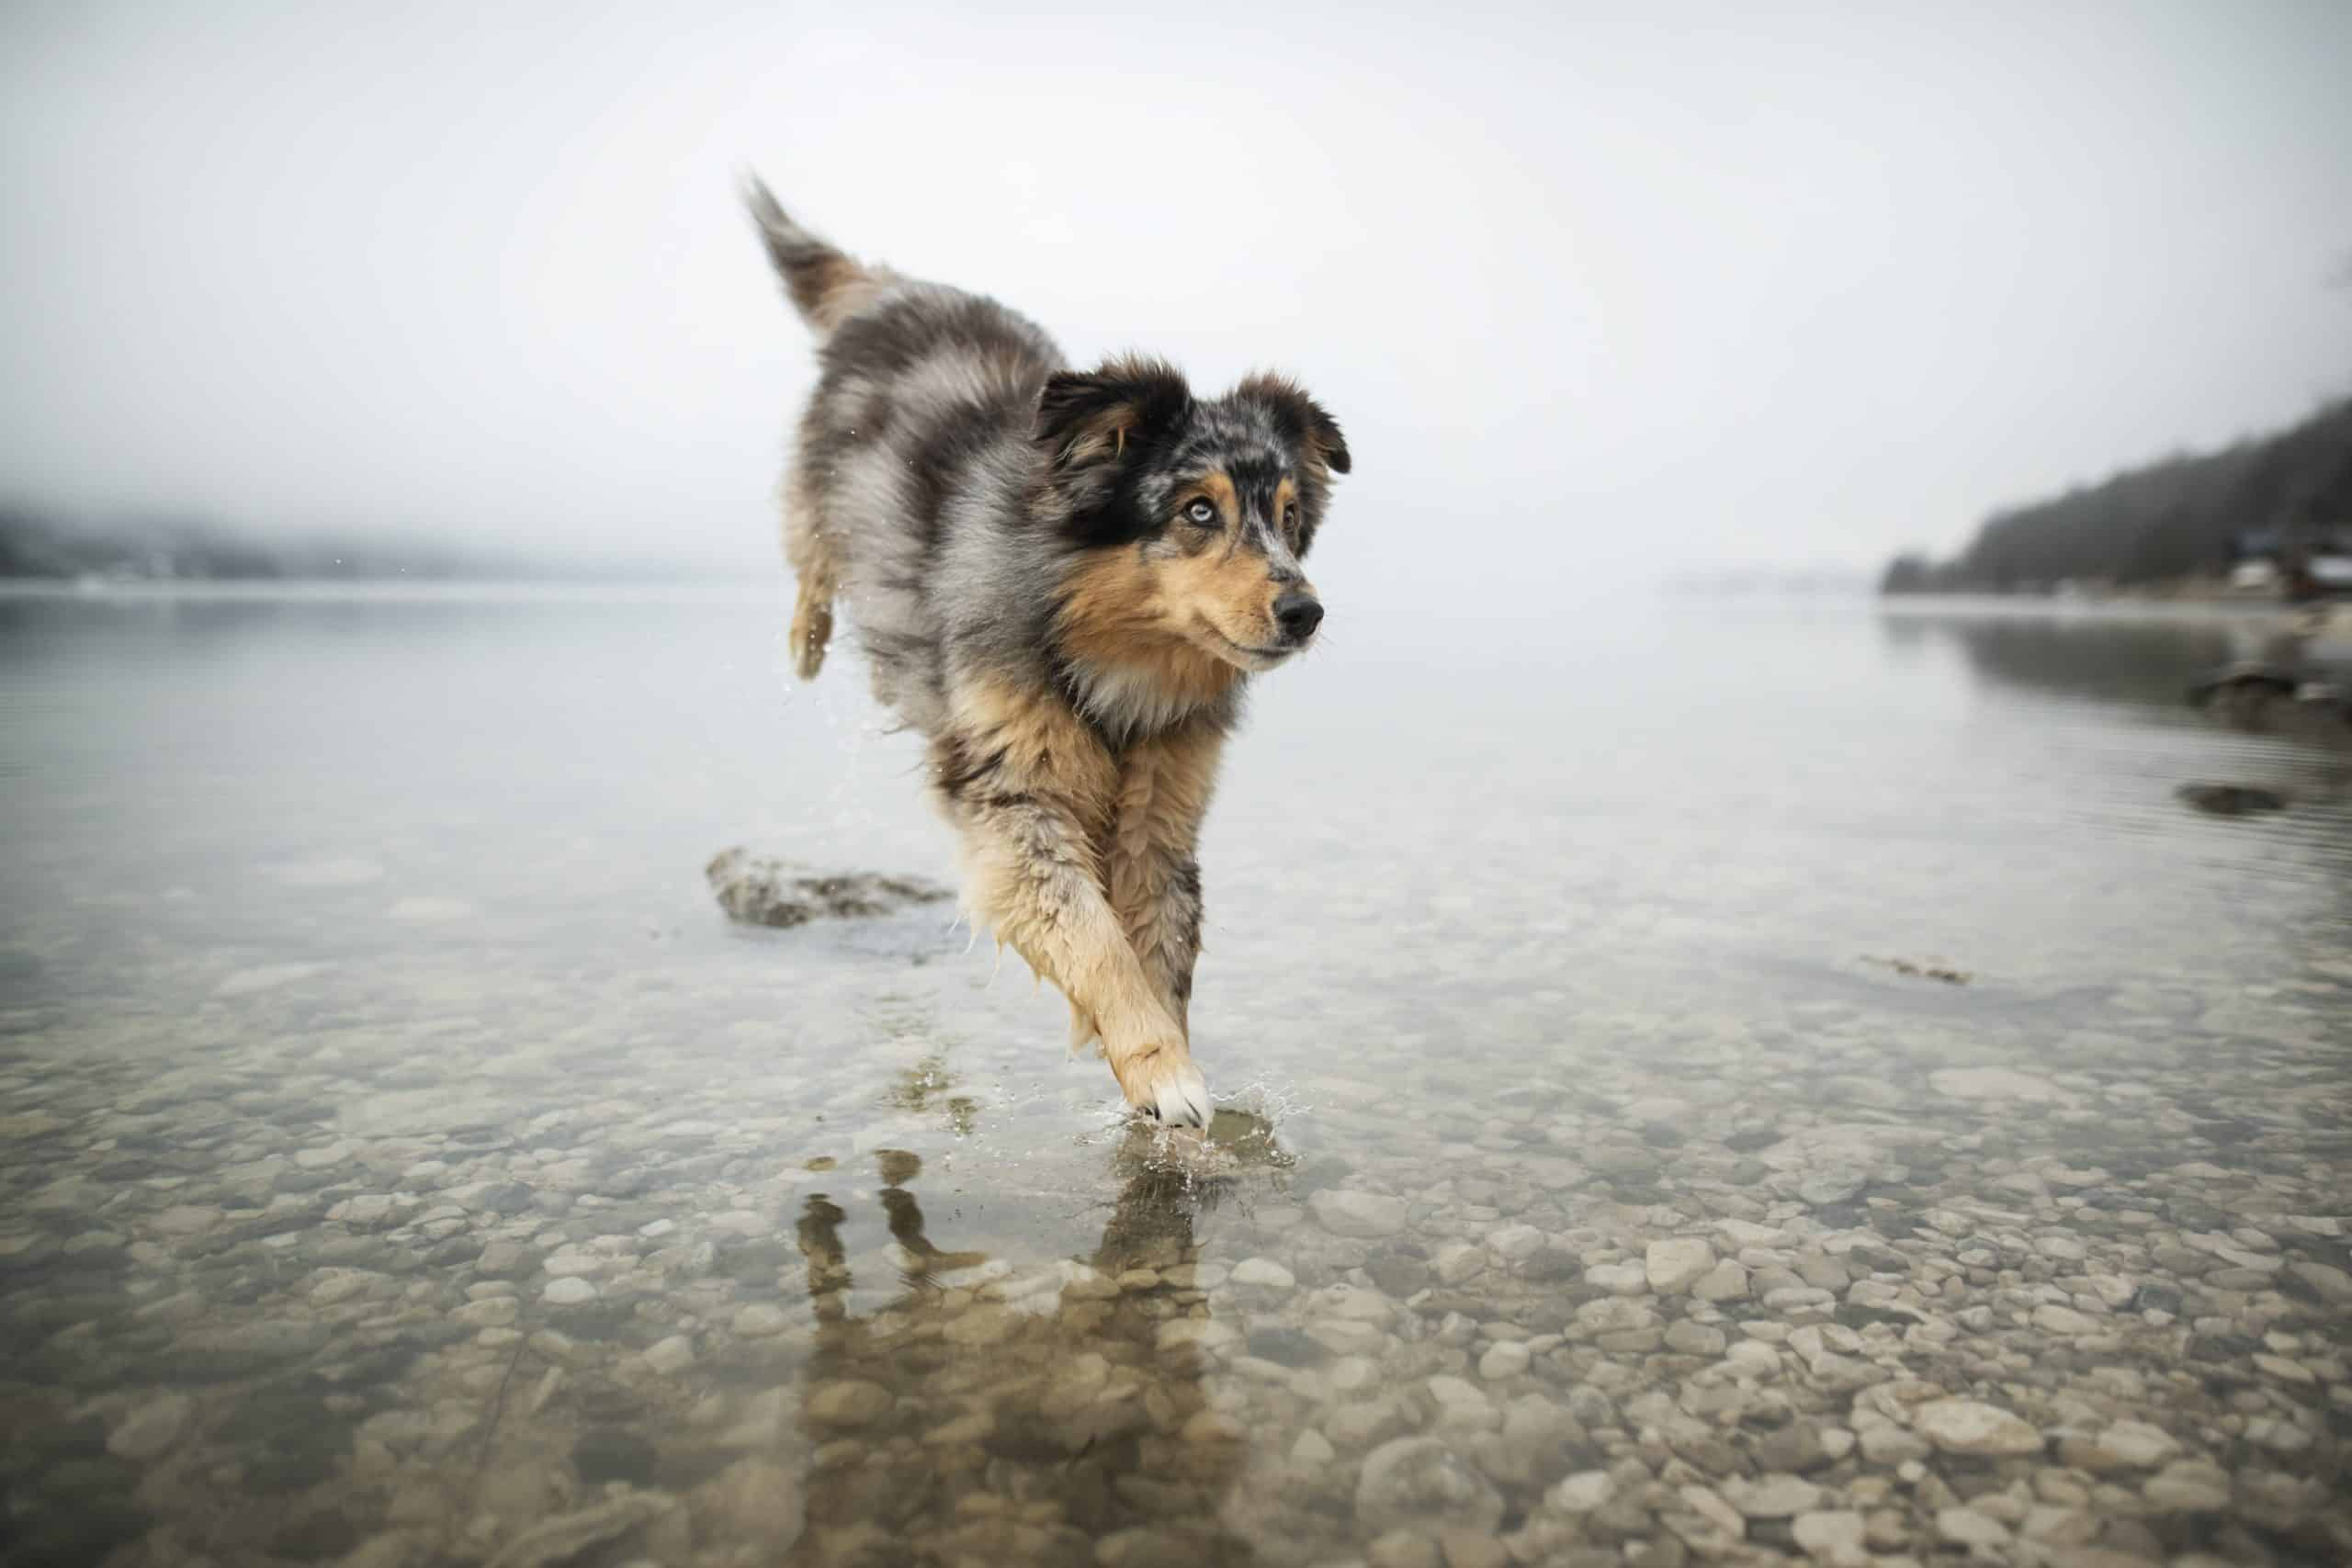 Australian Shepherd runs in lake. One of the most active dog breeds, Aussies are incredibly smart and athletic herding dogs.